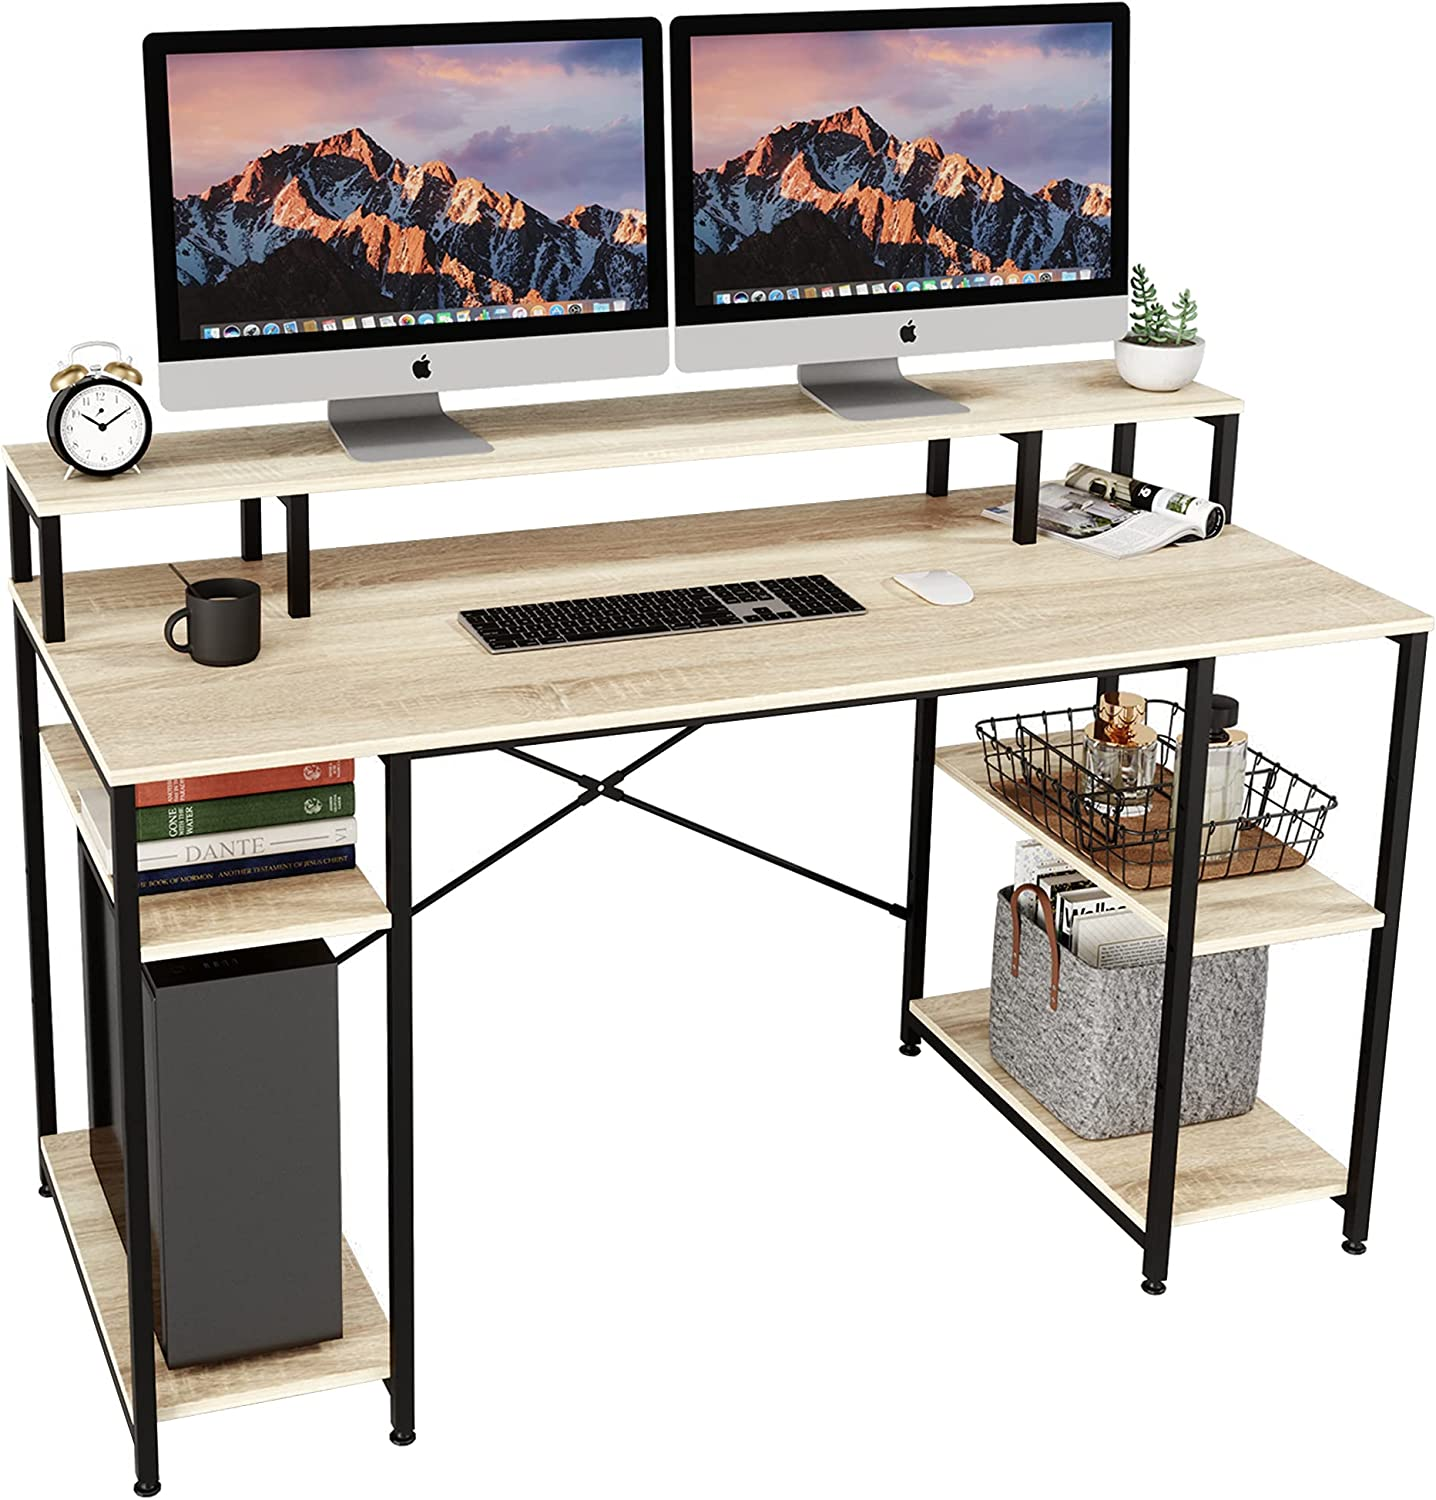 Bestier Computer Desk with Monitor Shelf, 55 inches Home Office Desk with Open Storage Shelves, Writing Gaming Study Table Workstation for Small Space, Oak